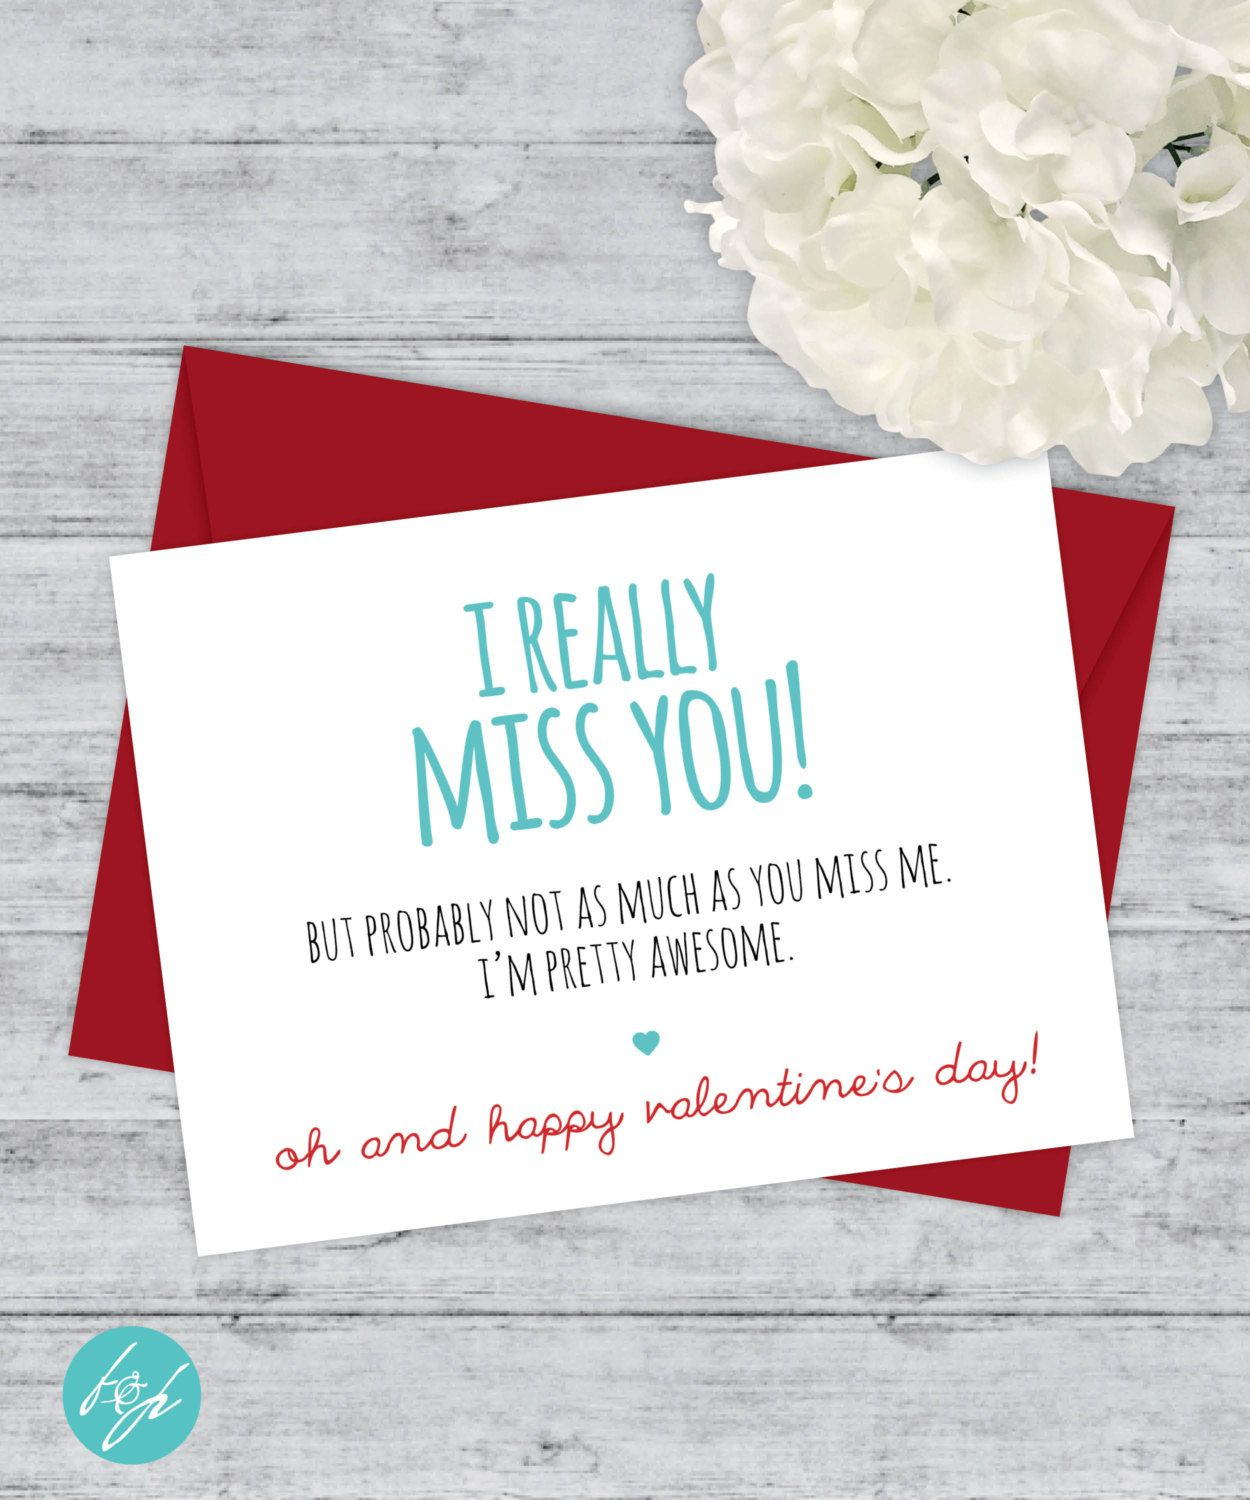 Funny valentines day card miss you card i really miss you but funny valentines day card miss you card i really miss you but probably not kristyandbryce Image collections